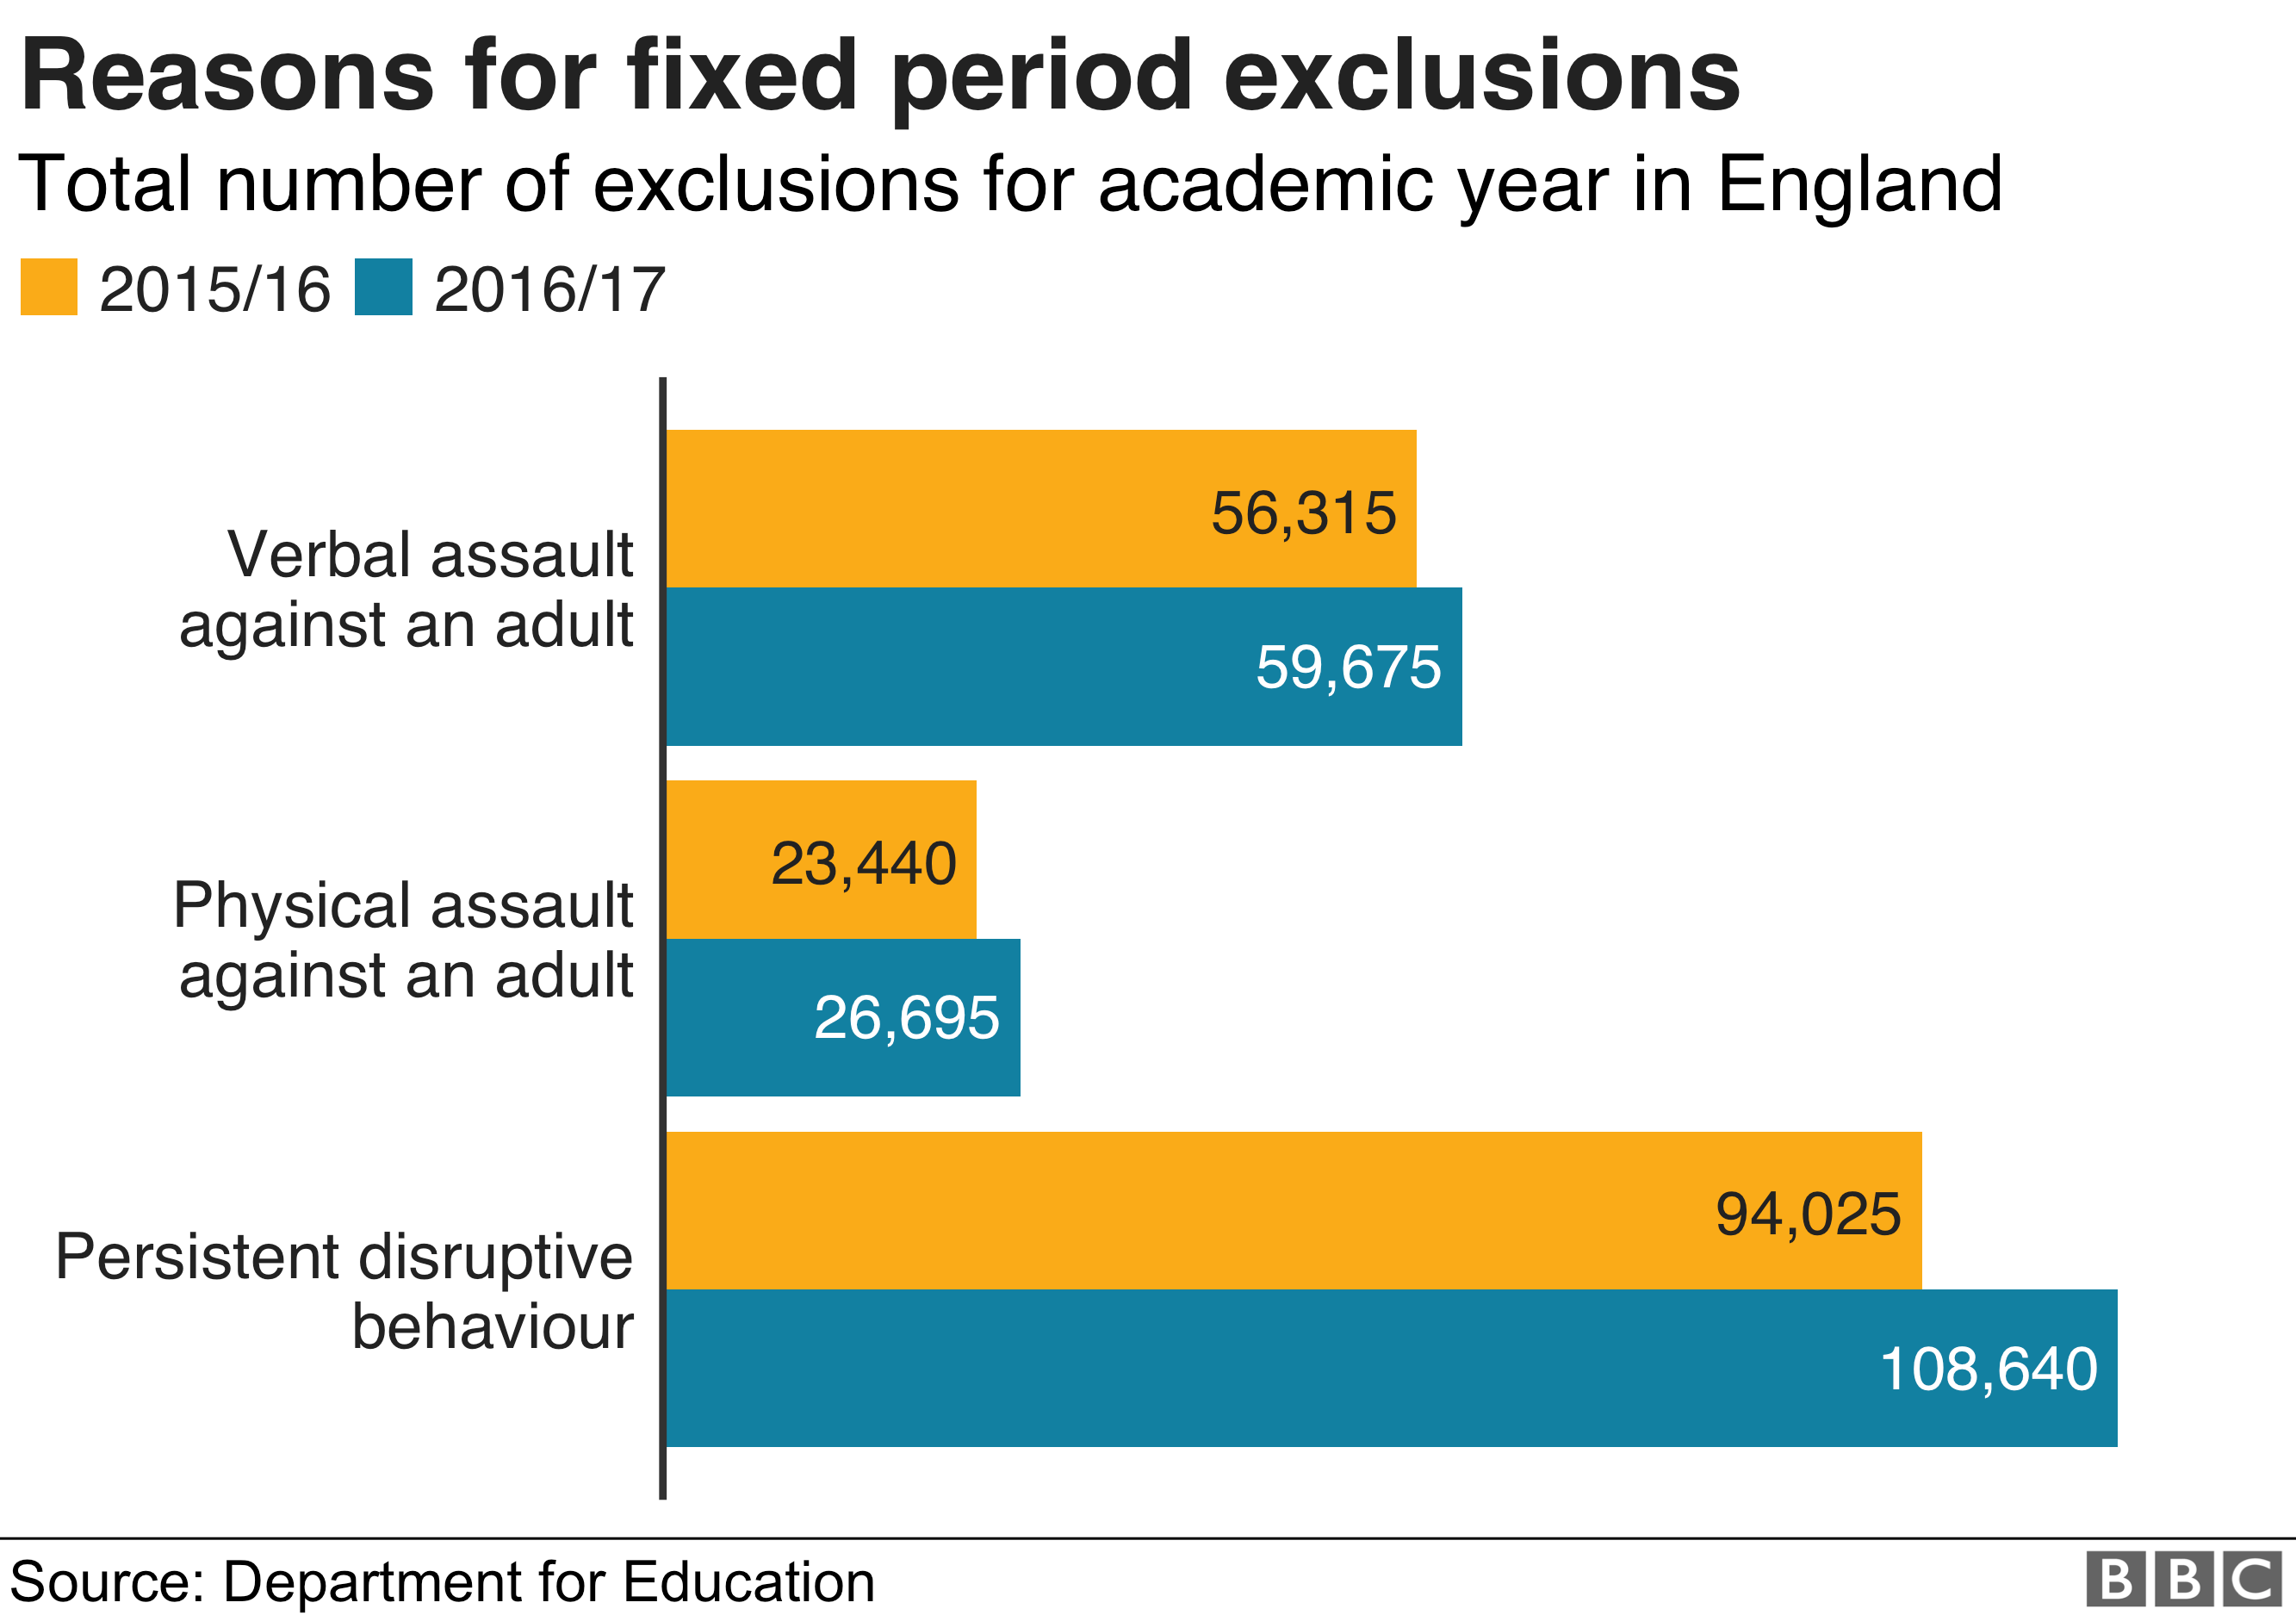 Chart showing reasons for fixed period exclusions at schools in England during the 2016/17 academic year